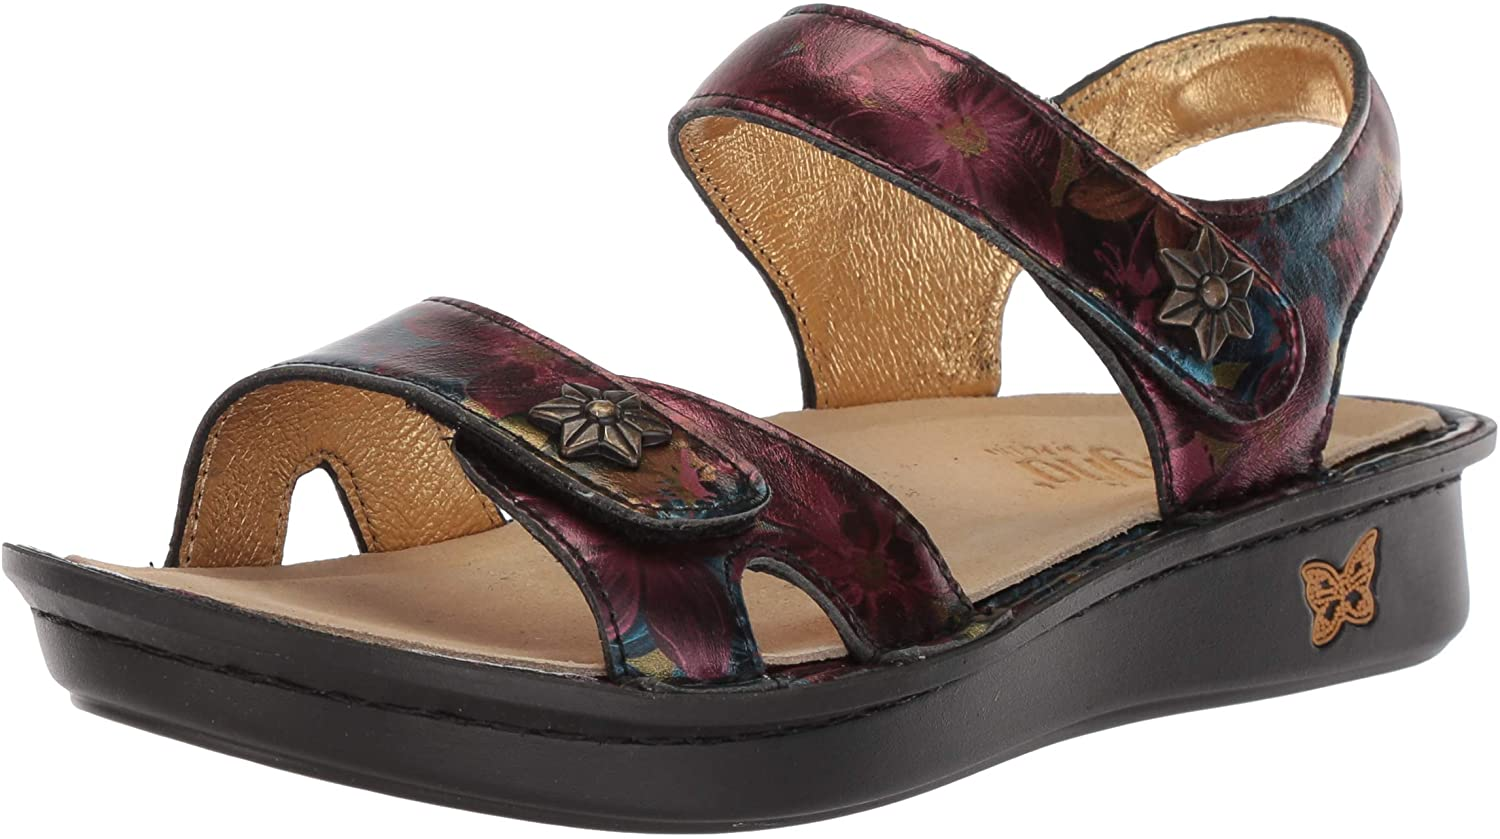 Alegria Women's All Today's only stores are sold Loafer Vienna